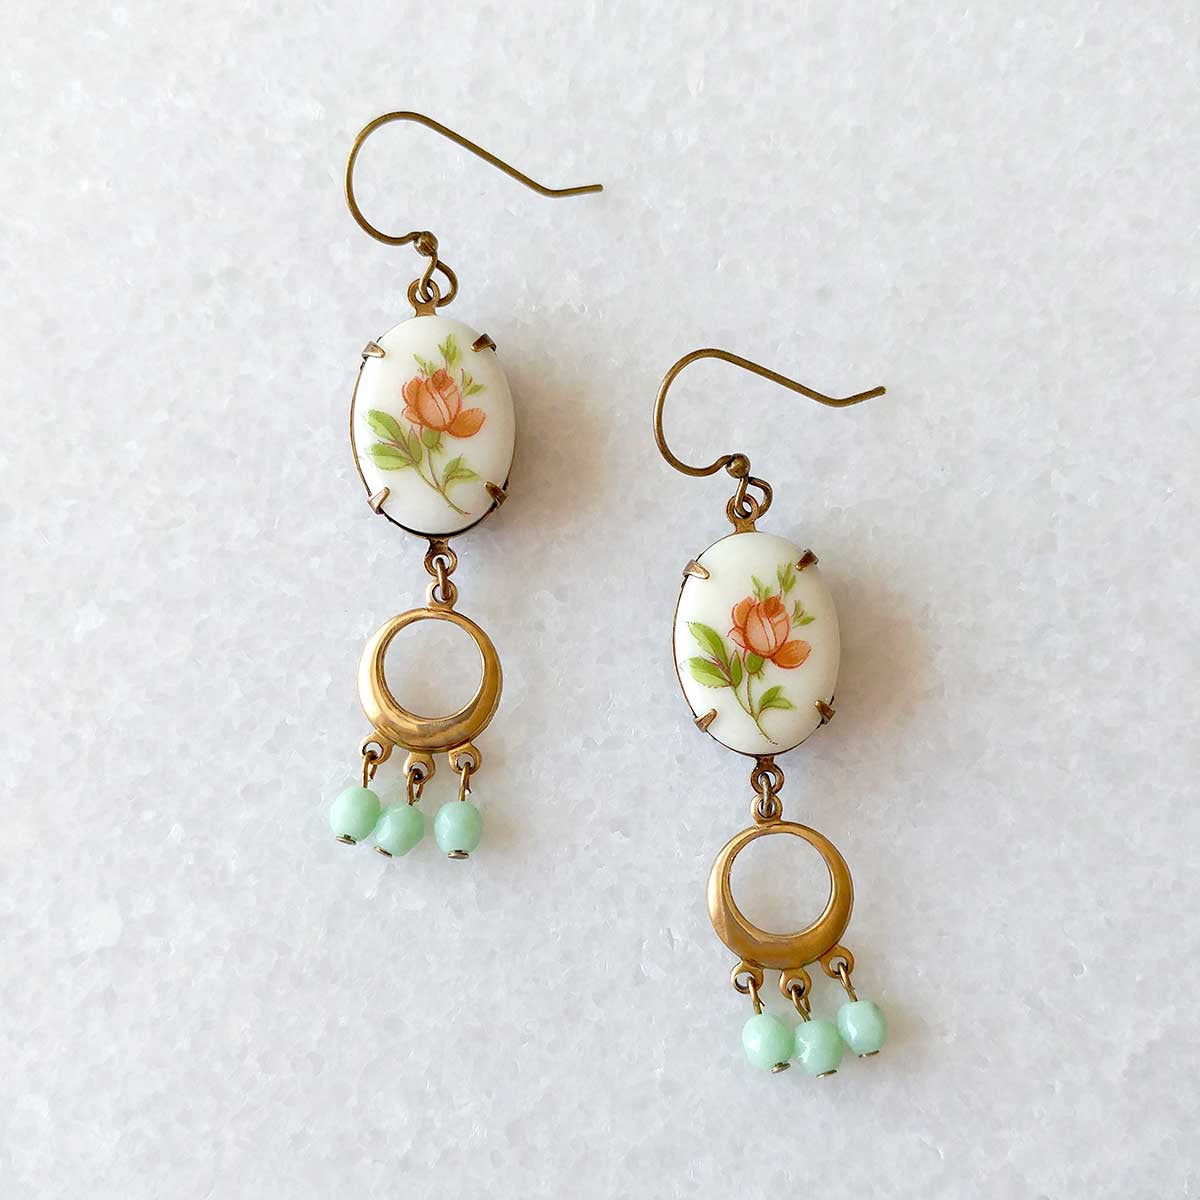 Esmee Earrings (SD1268)